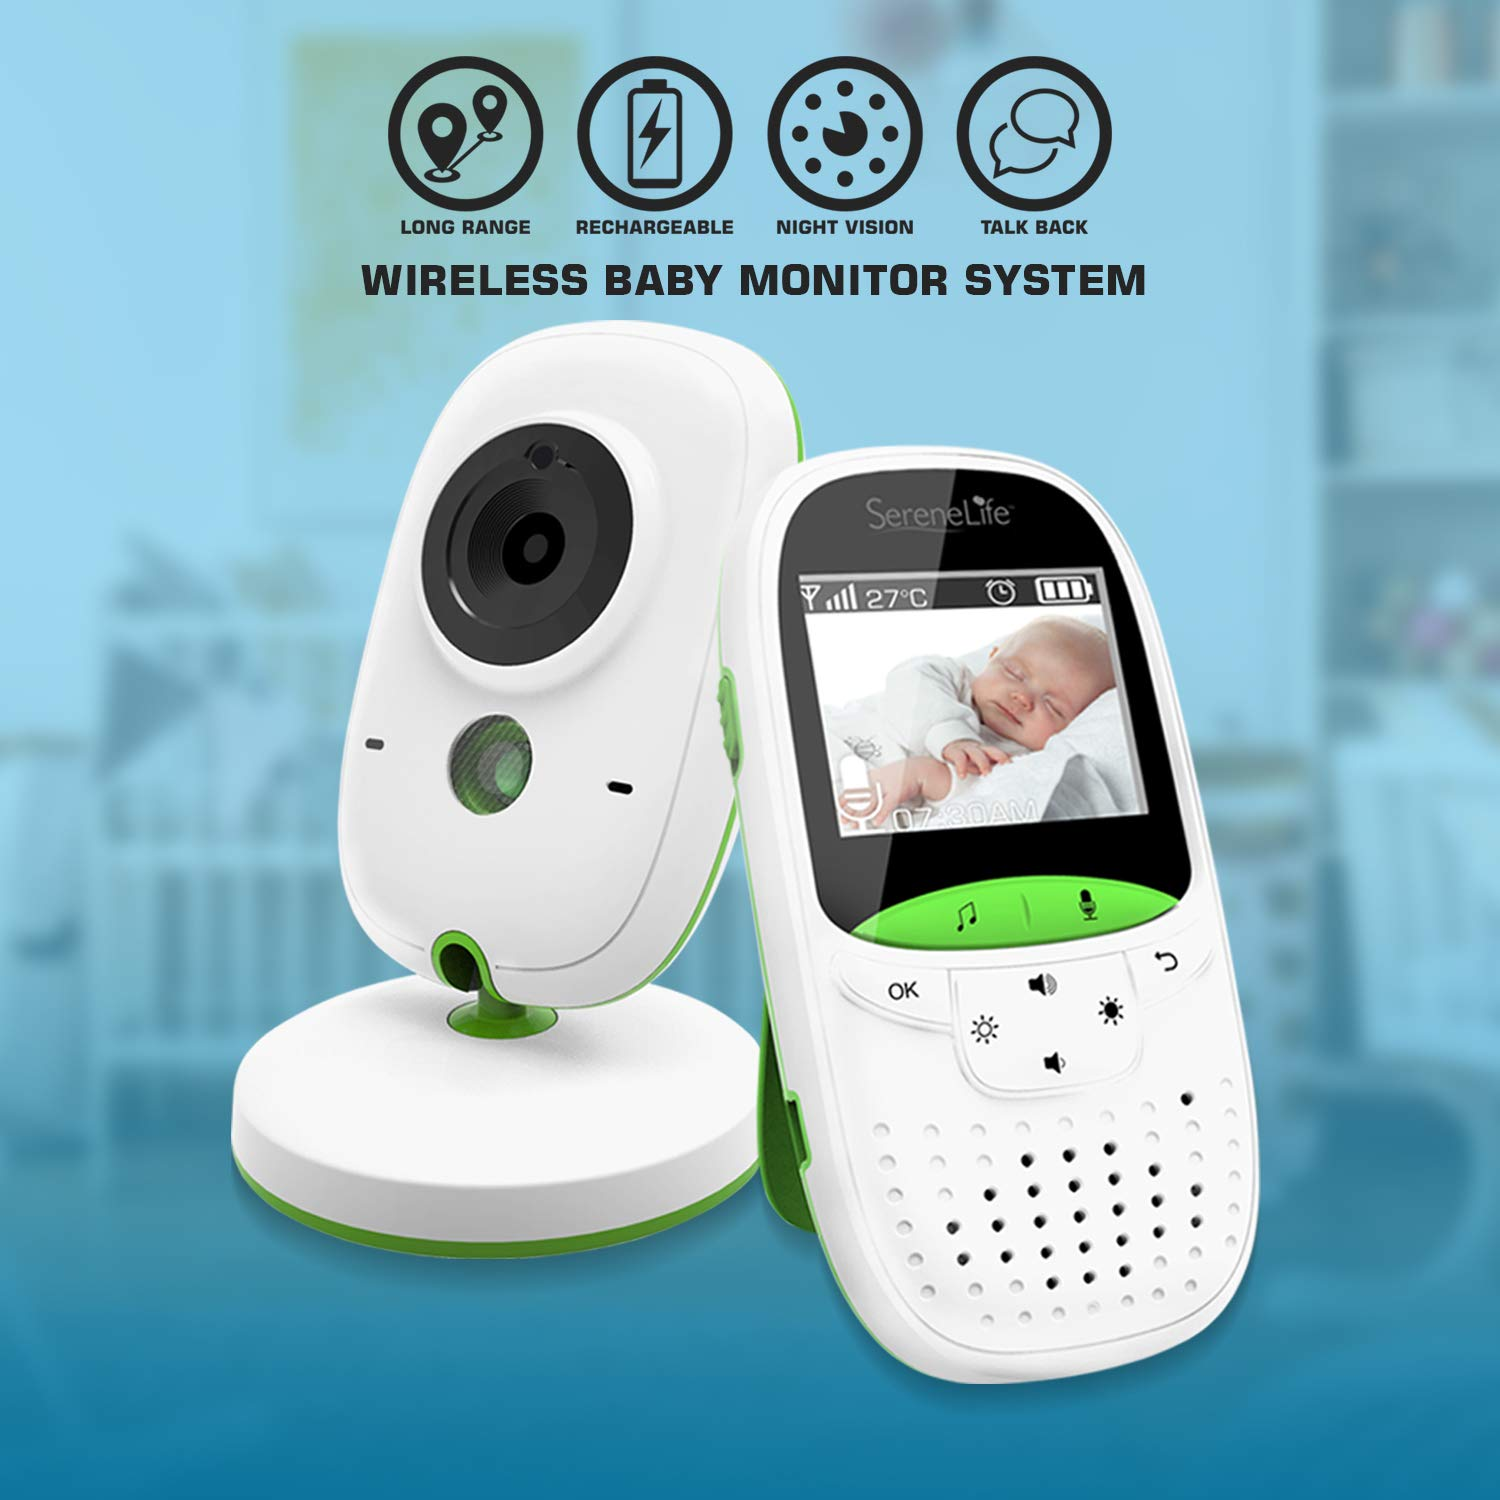 Video Baby Monitor Long Range – Upgraded 850 Wireless Range, Night Vision, Temperature Monitoring and Portable 2 Color Screen – Serenelife USA SLBCAM10